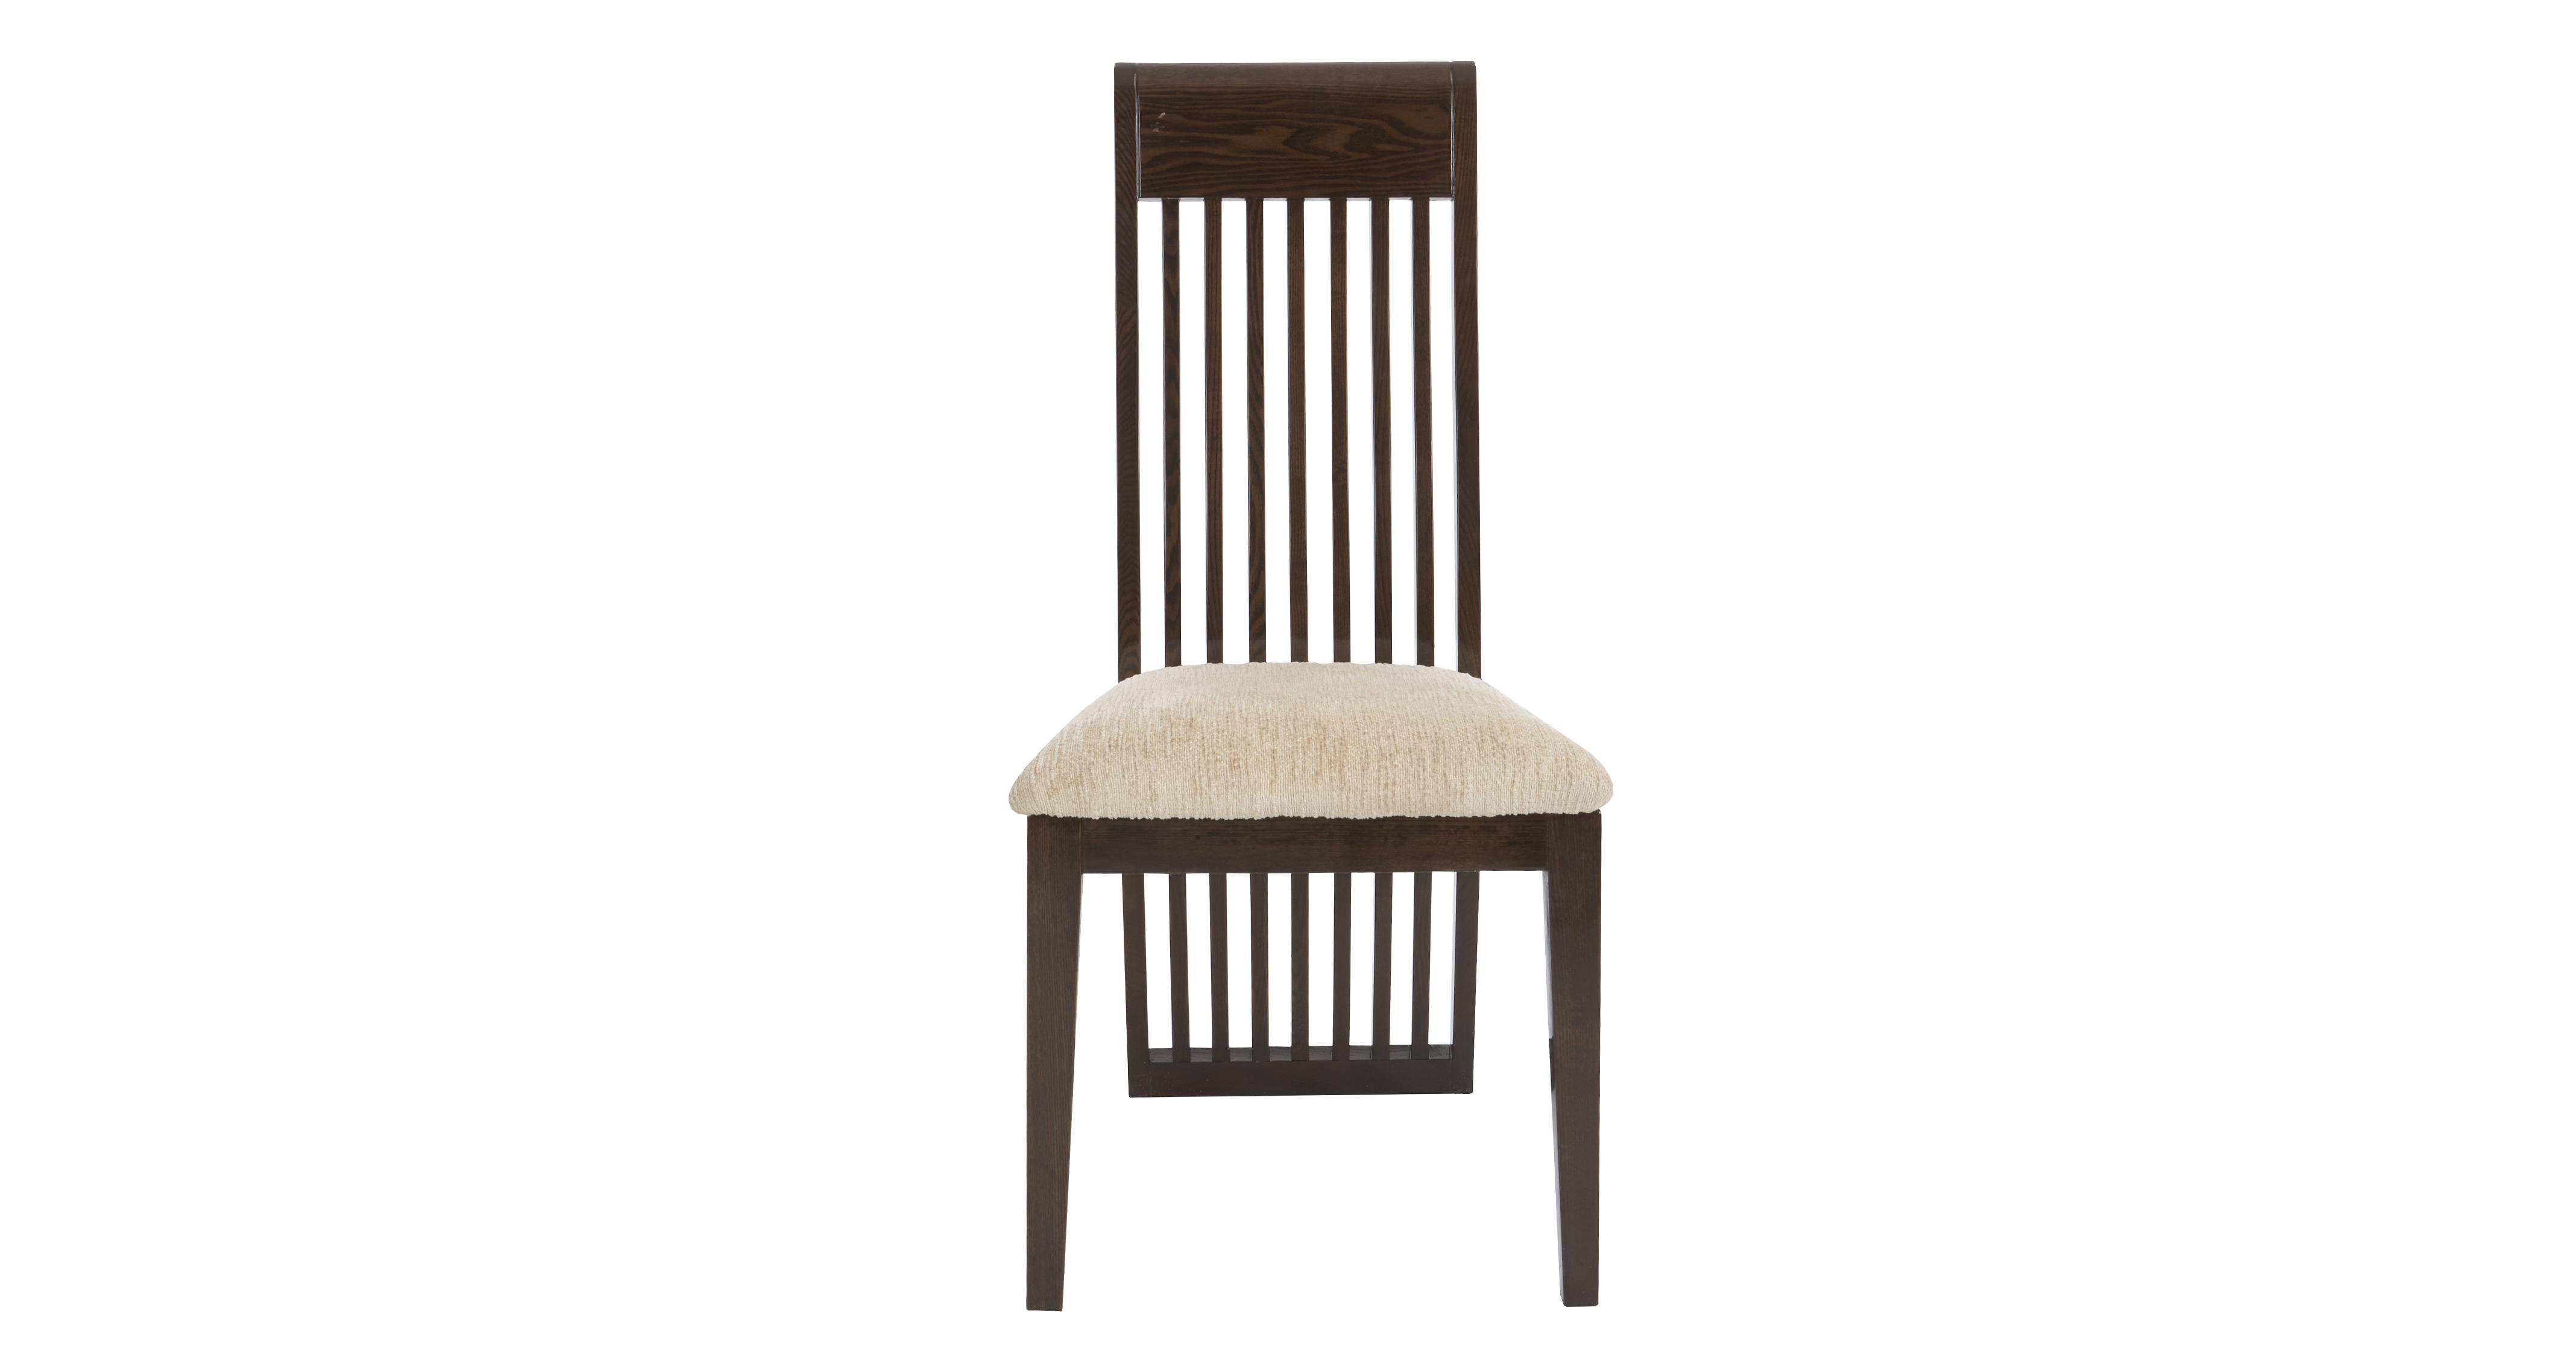 Lima Bedroom Furniture Strasbourg Lima Dining Chair Lima Chair Dfs